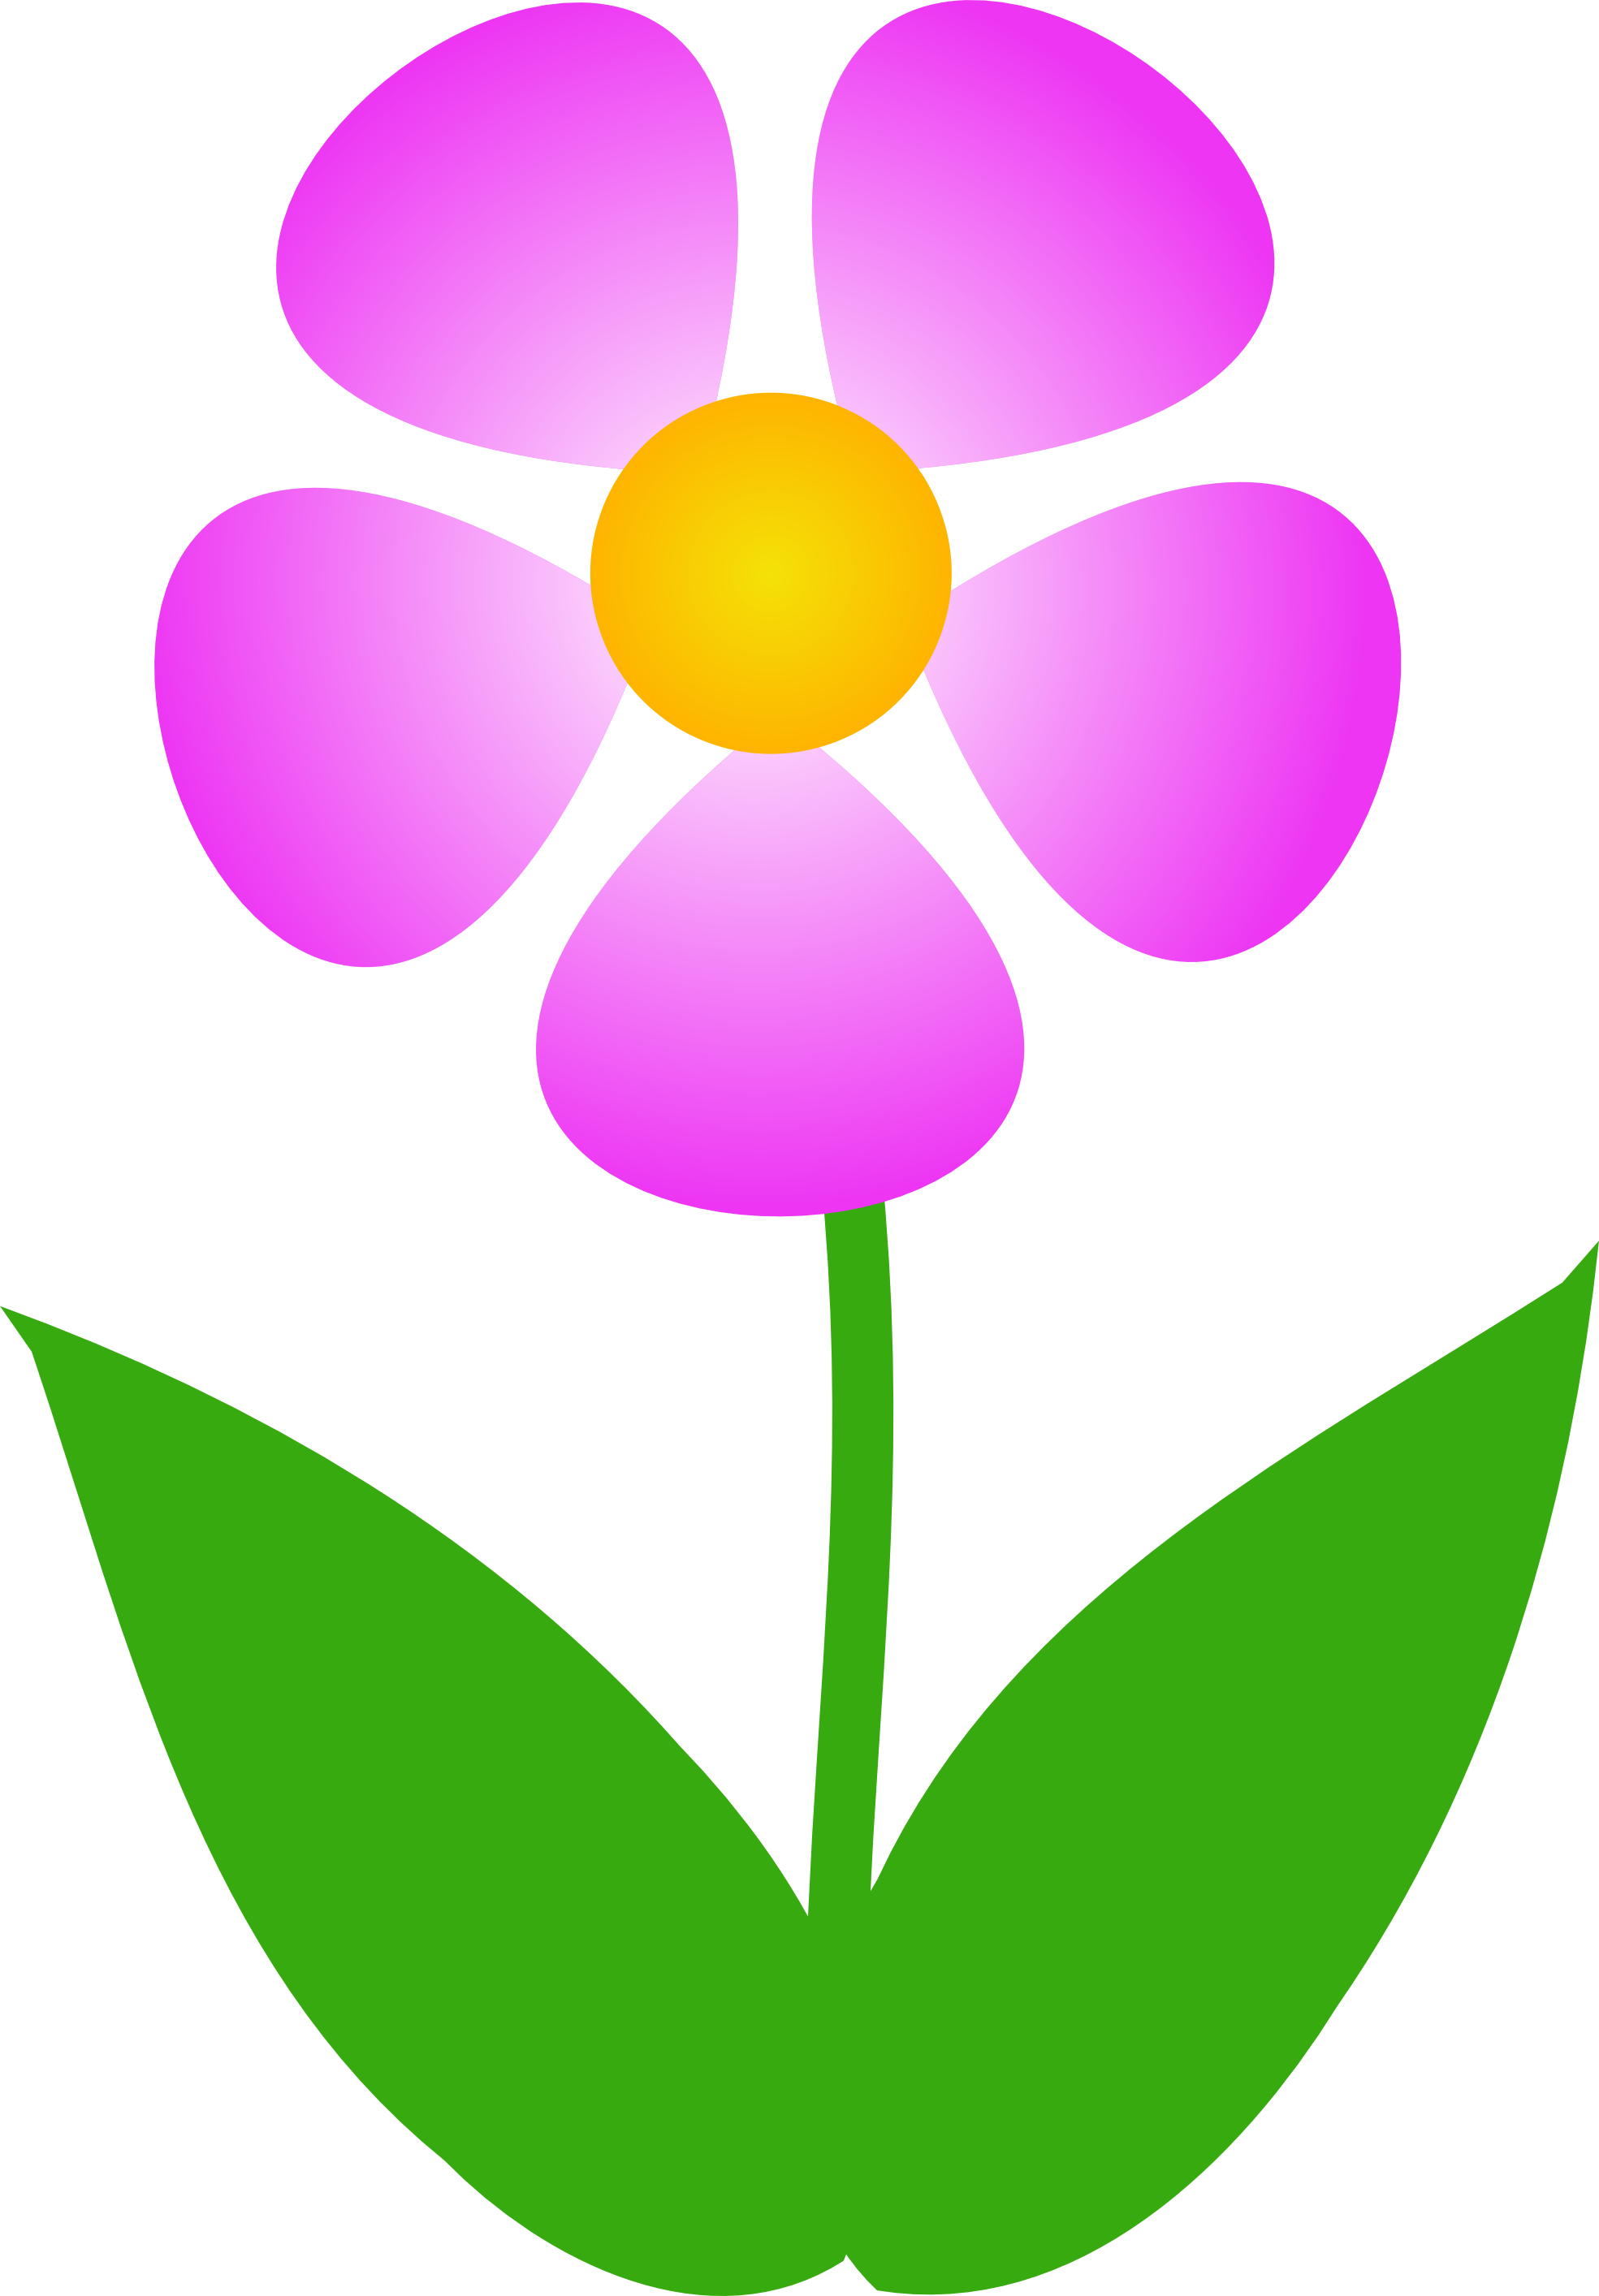 Free Clipart Images Of Flowers Flower Cl-Free clipart images of flowers flower clip art pictures image 1-11